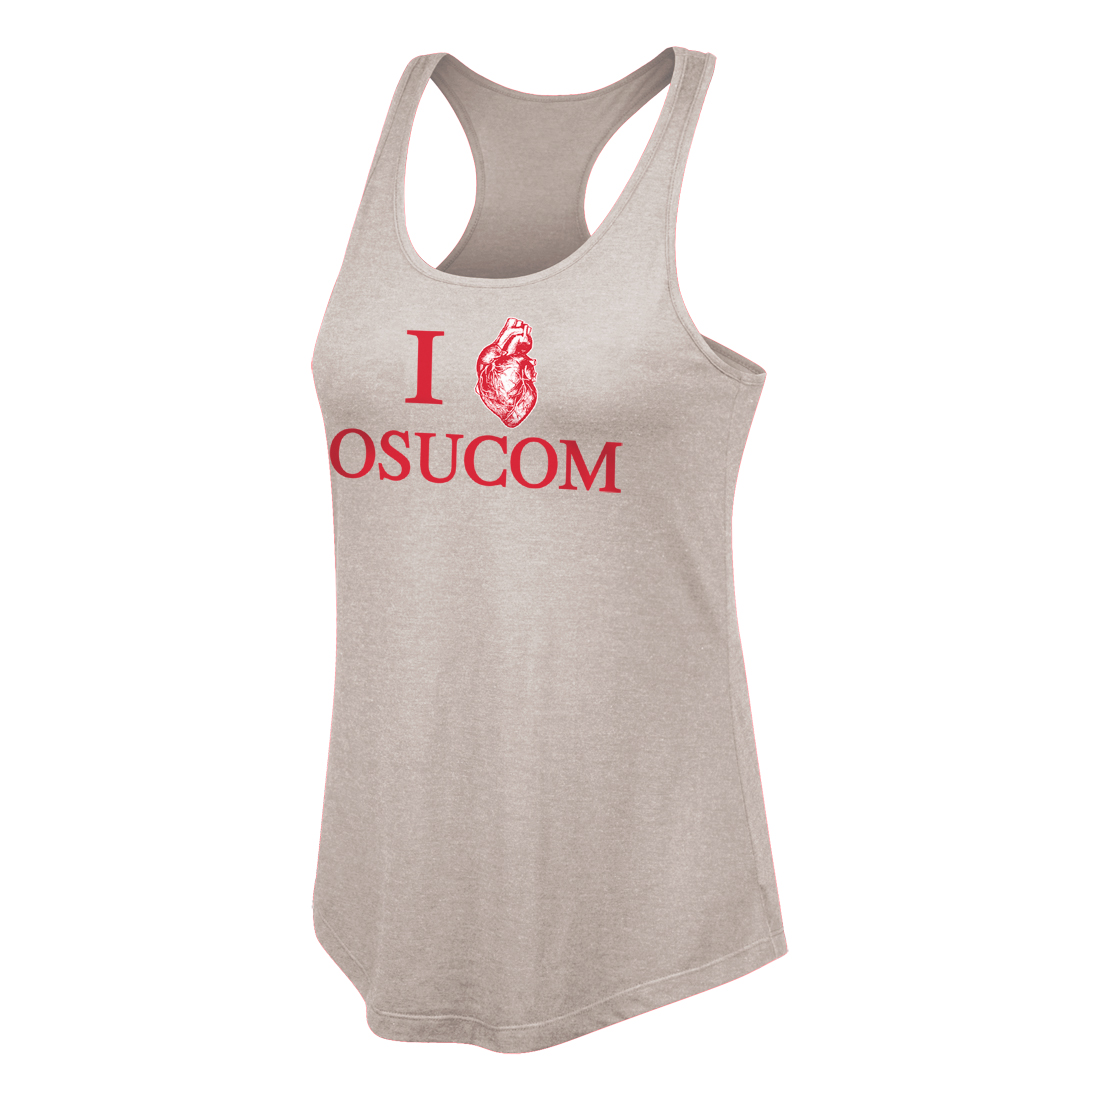 I Heart OSUCOM Racerback Price: $22 Polyester-Cotton-Rayon Triblend Sizes Available: S-XXL